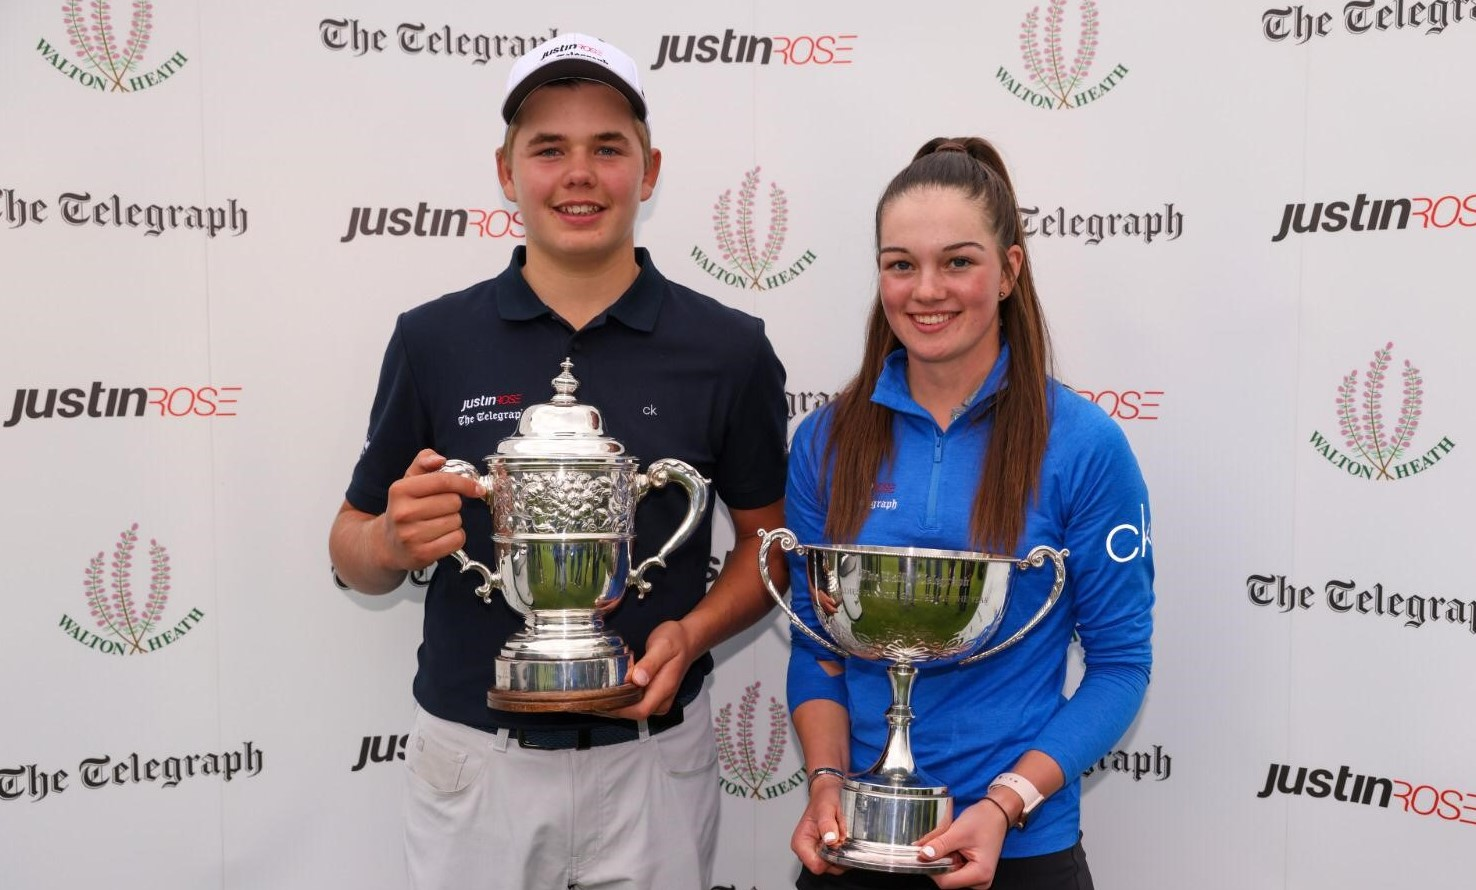 Smith and Gourley in full bloom to claim Justin Rose Telegraph titles